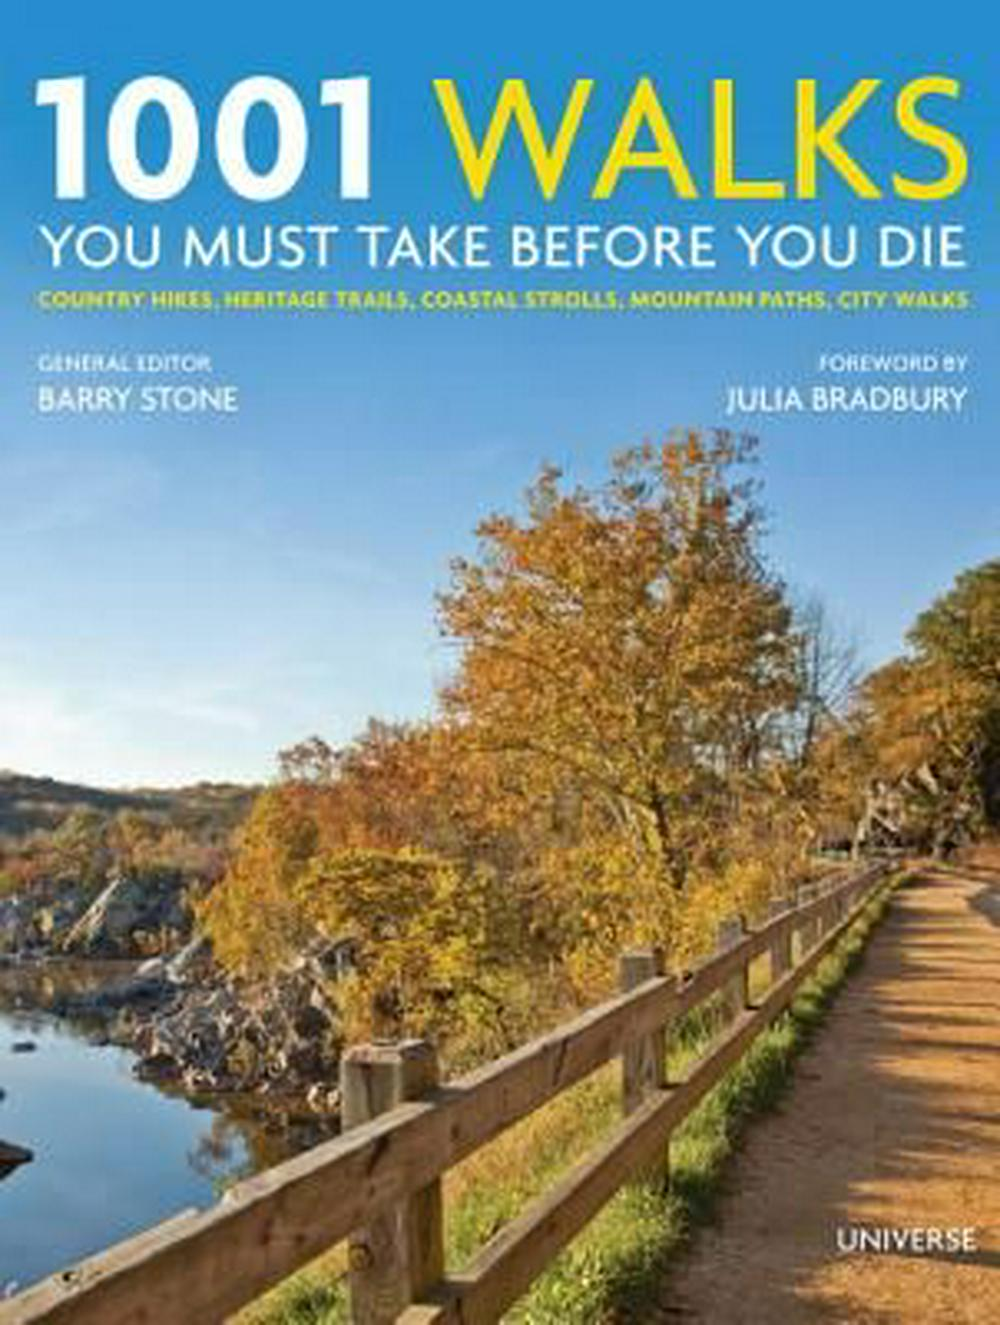 1001 Walks You Must Take Before You Die: Country Hikes, Heritage Trails, Coastal Strolls, Mountain Paths, City Walks by Barry Stone, ISBN: 9780789329158